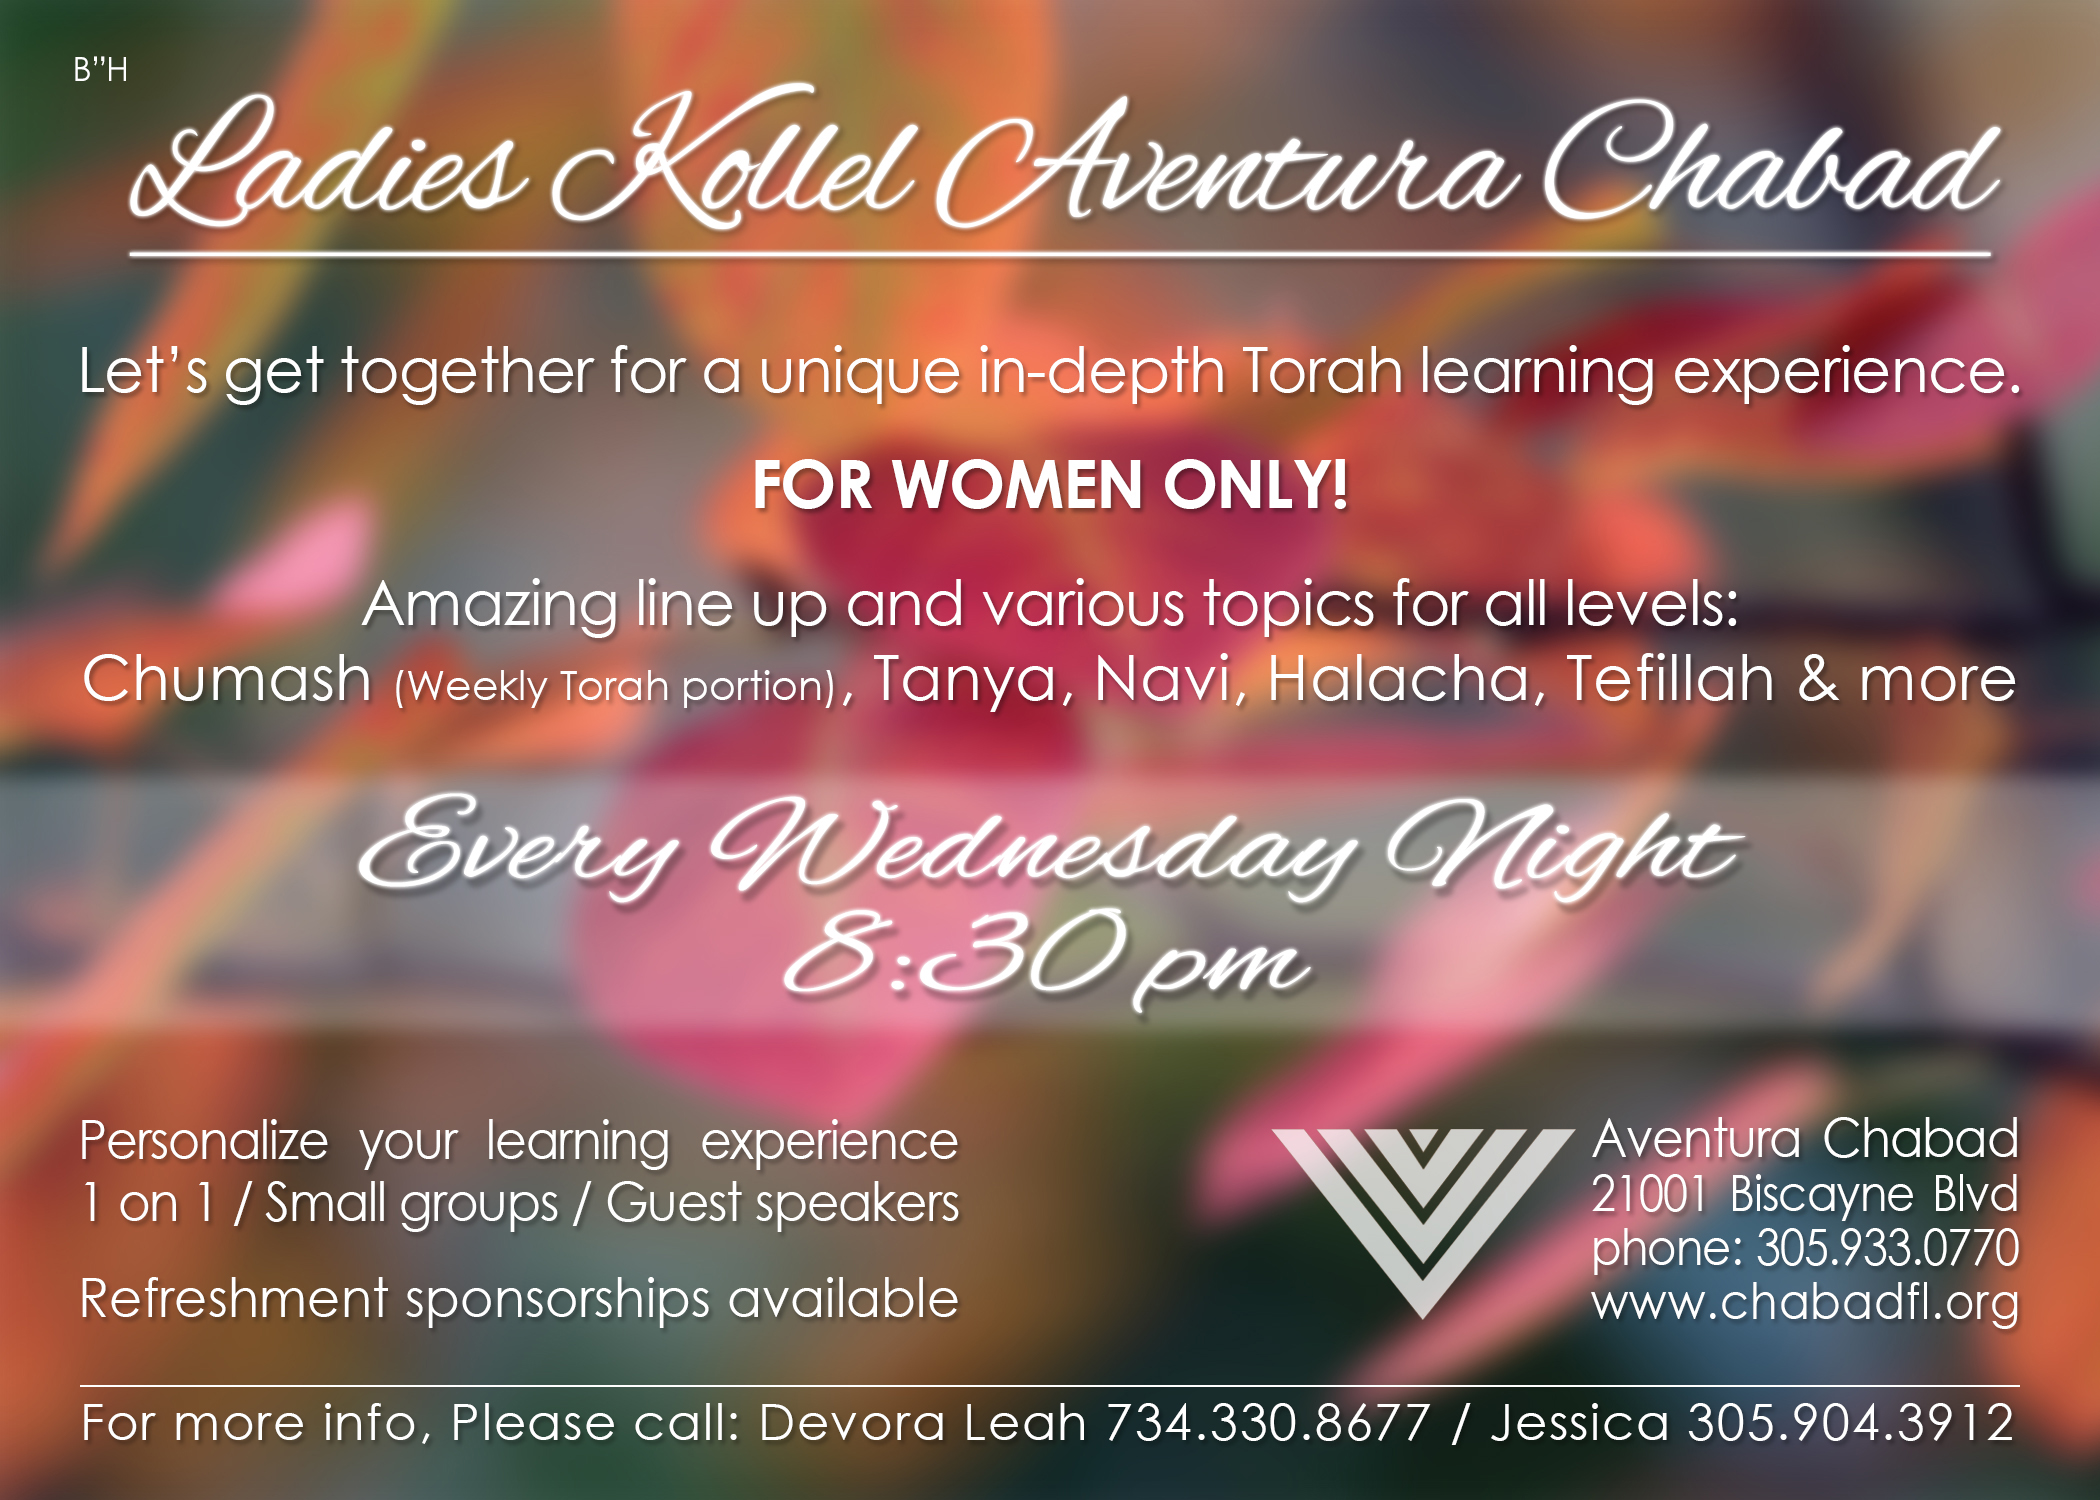 Ladies Kollel Flyer.jpg